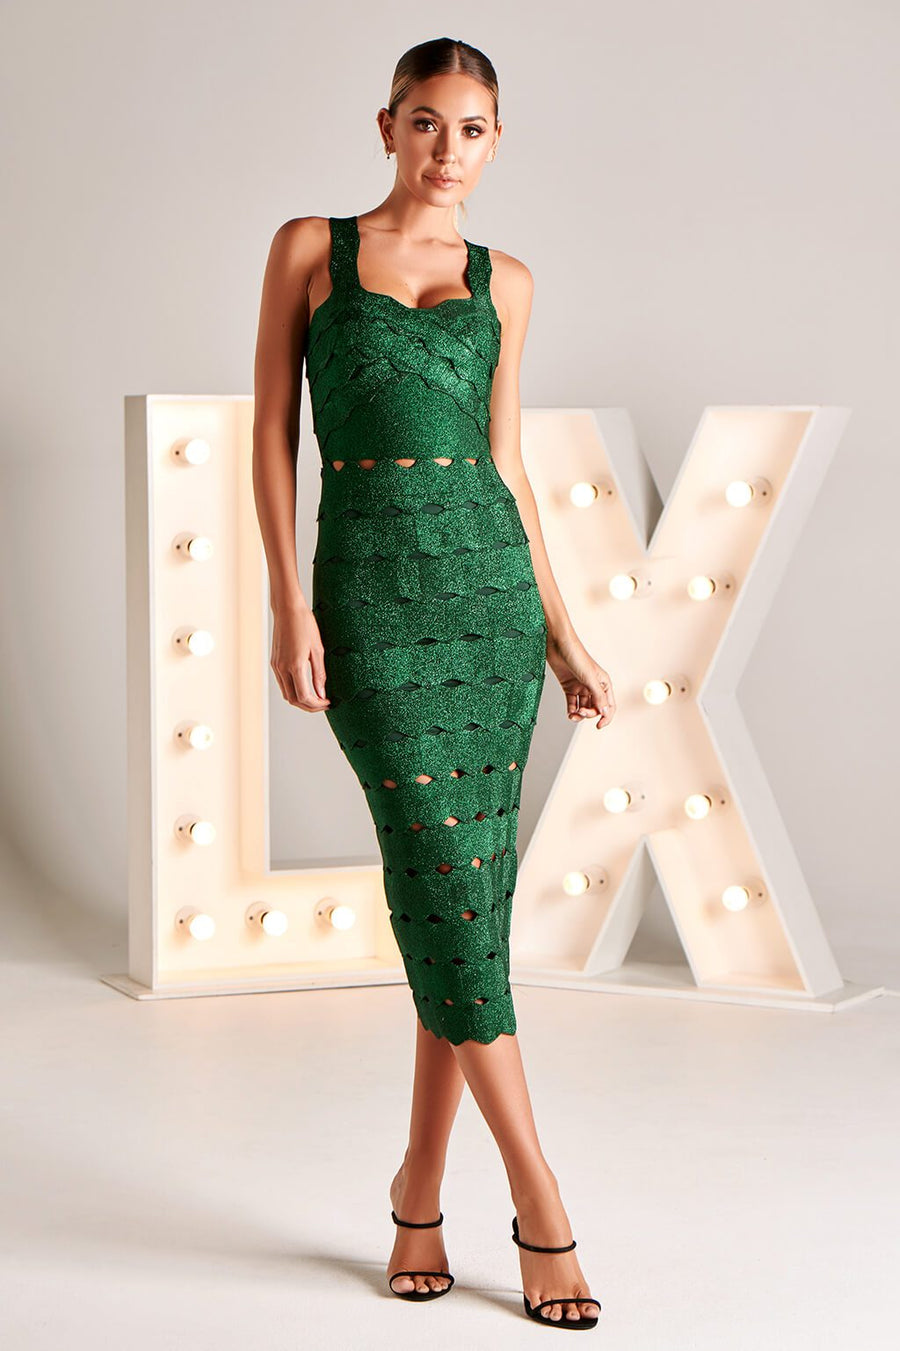 LAURETTA LX BANDAGE DRESS IN EMERALD